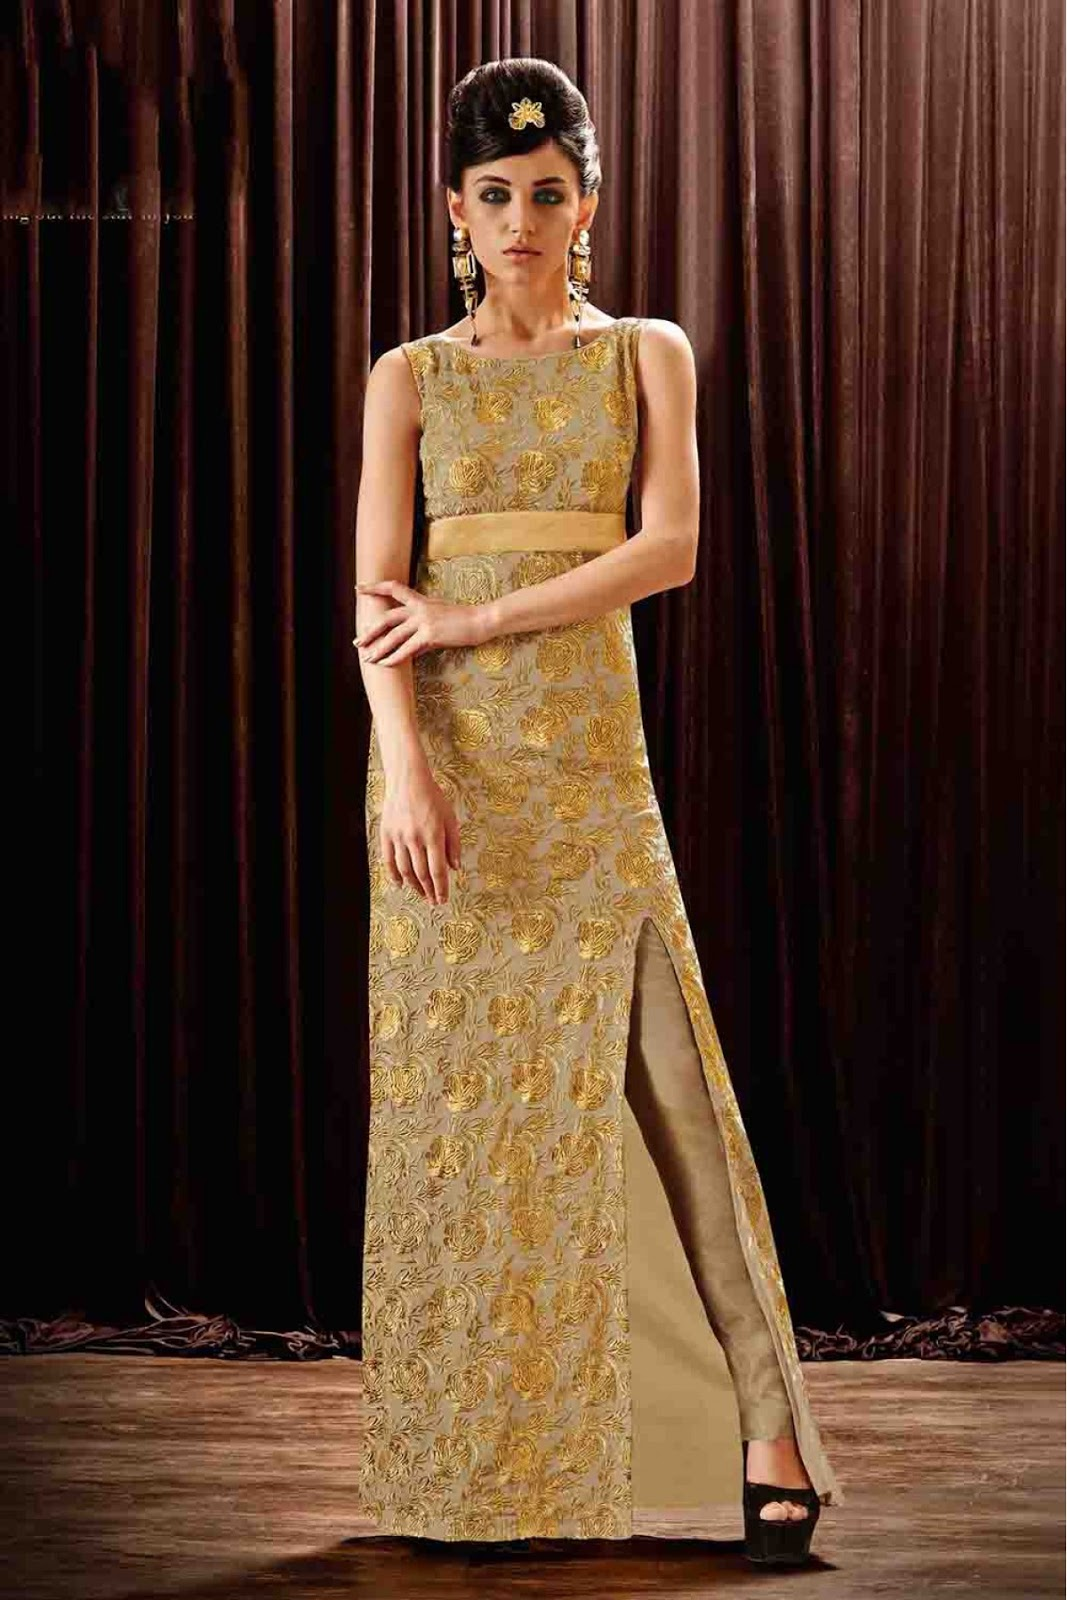 Latest Collection Online: Online Designer Gowns Sale in India